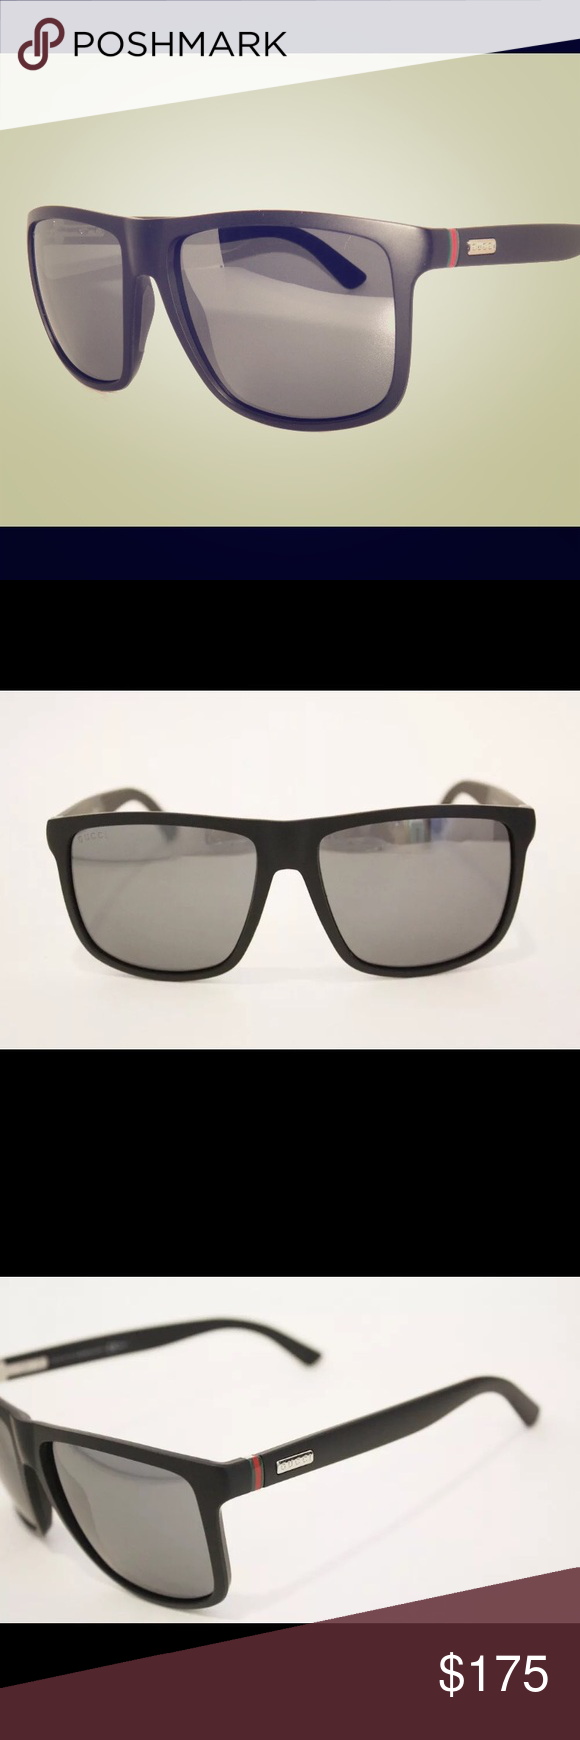 14a8f0287de Gucci SunGlasses GG 1076 N S DL54X Used once or twice minor scratches it  shows signs of use. pictures are actual pictures taken by me Gucci  Accessories ...